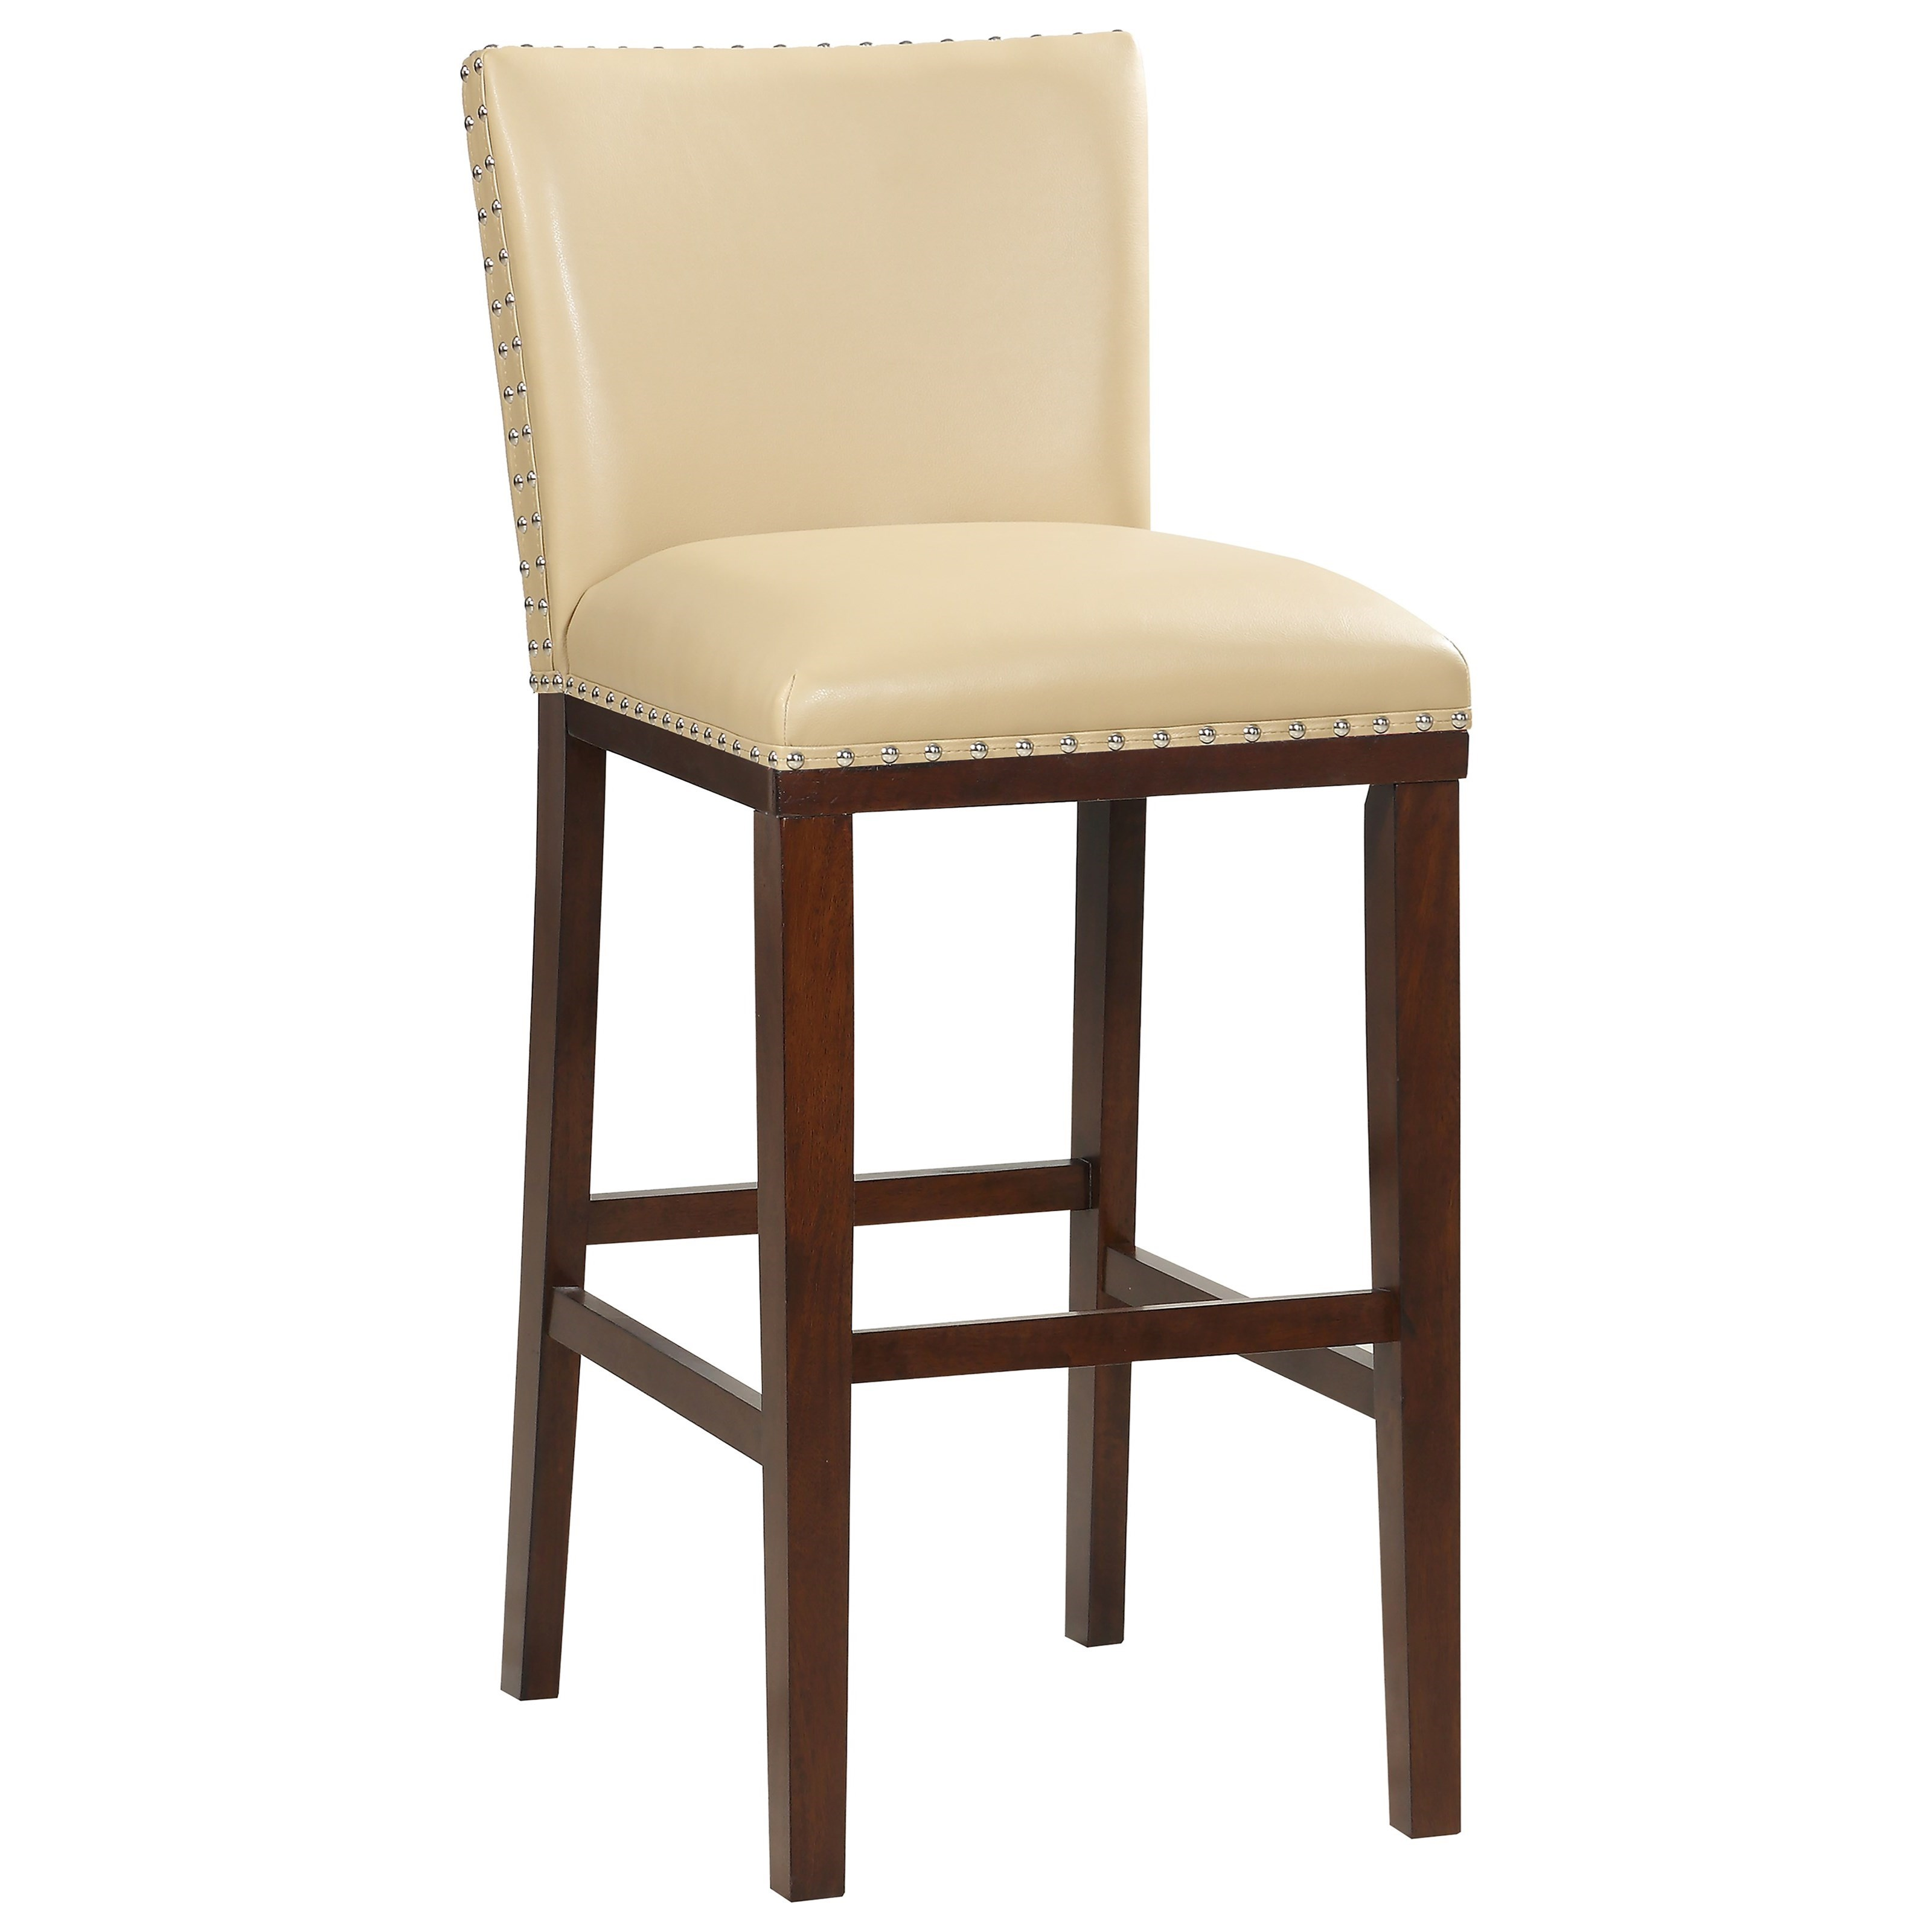 Tiffany Bar Chair by Steve Silver at Northeast Factory Direct